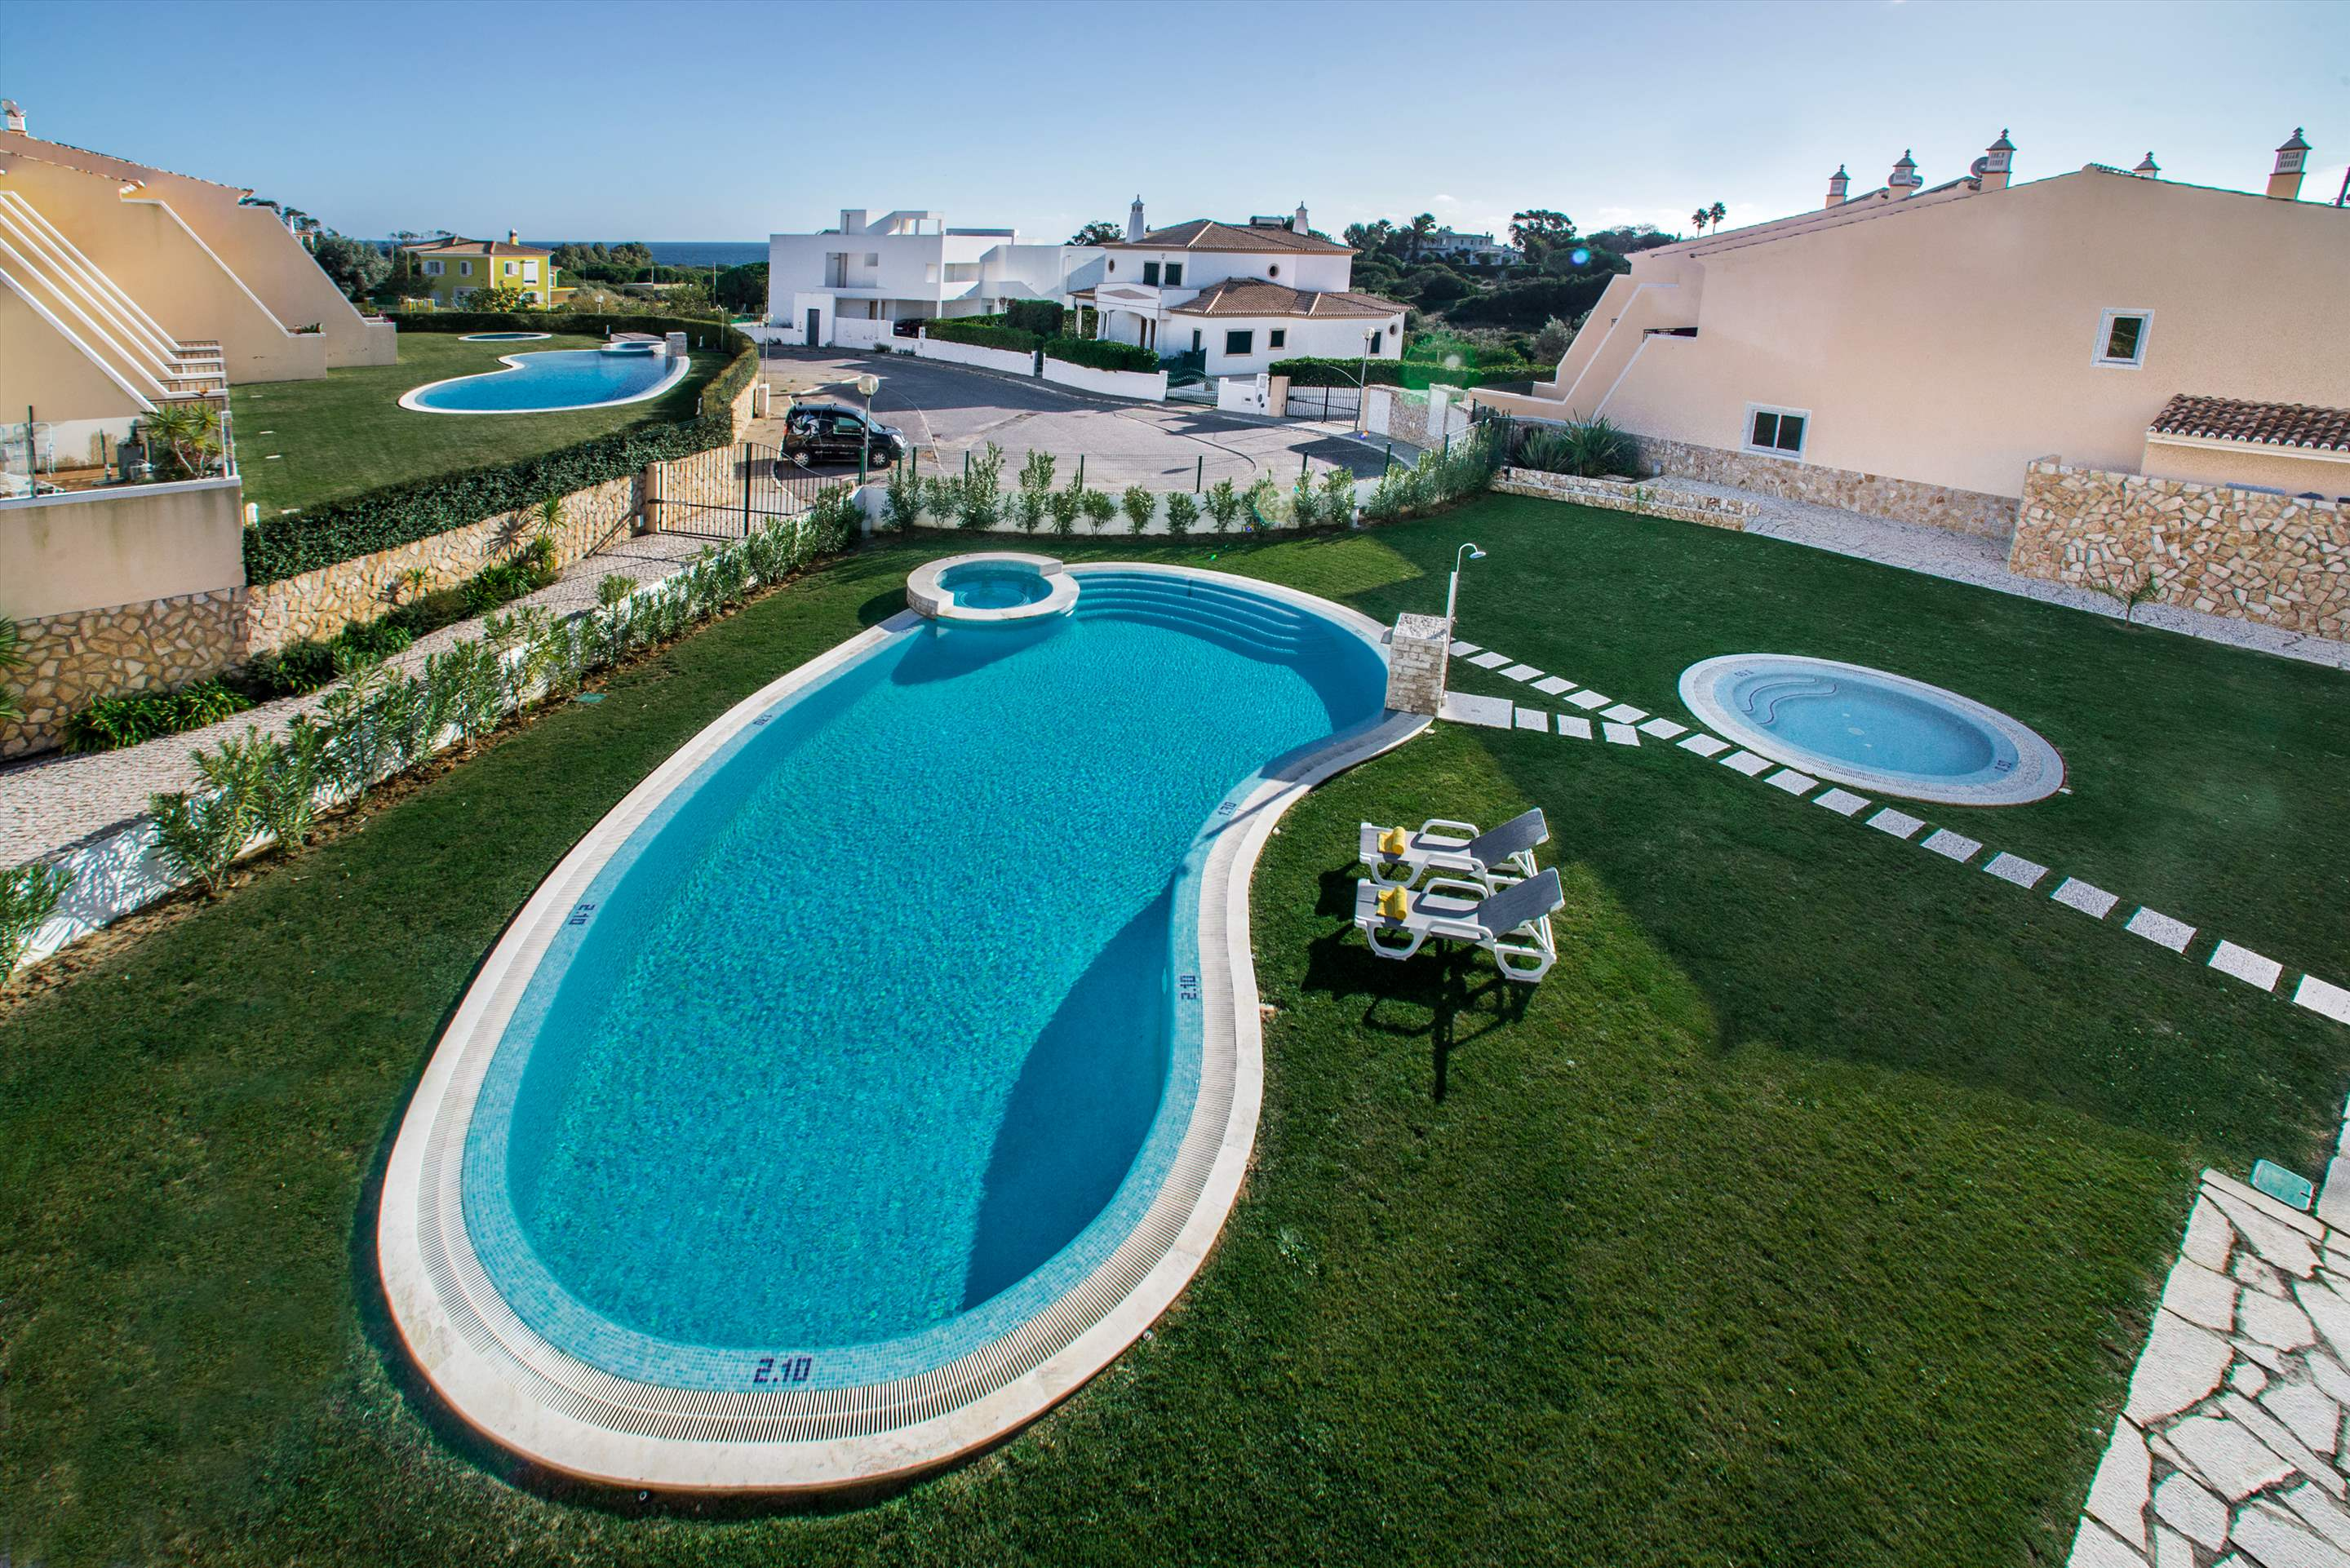 Townhouse Rosal 'D', 2 bedroom villa in Gale, Vale da Parra and Guia, Algarve Photo #21